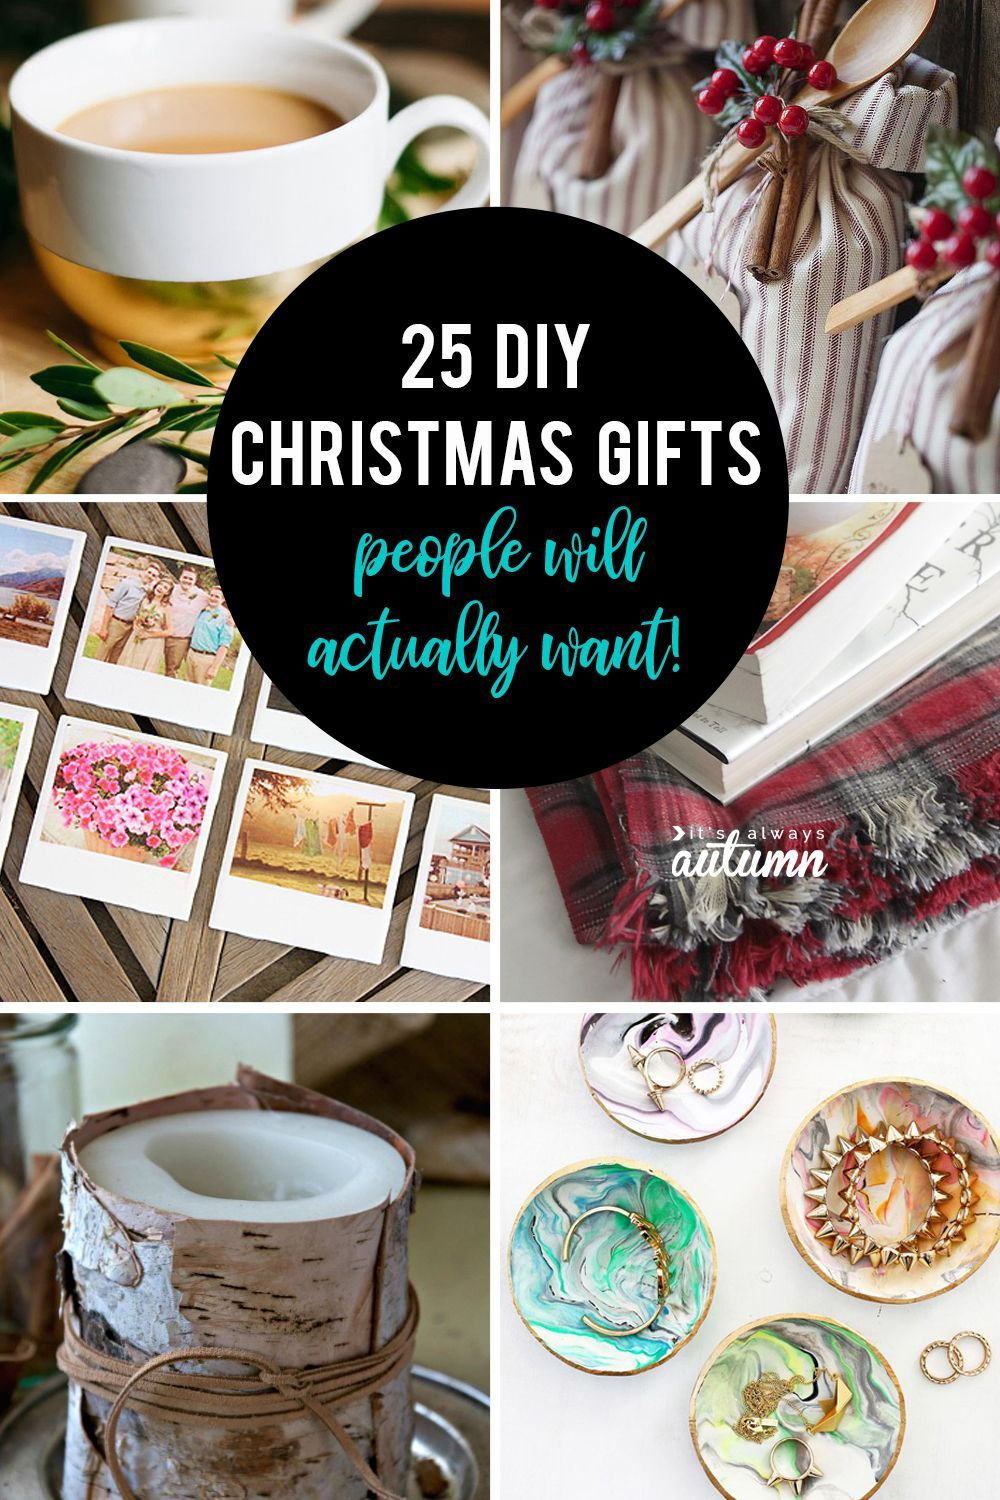 25 Beautiful Diy Christmas Gifts That People Actually Want These Are The Best Homemade Christmas Diy Holiday Gifts Homemade Christmas Gifts Creative Diy Gifts